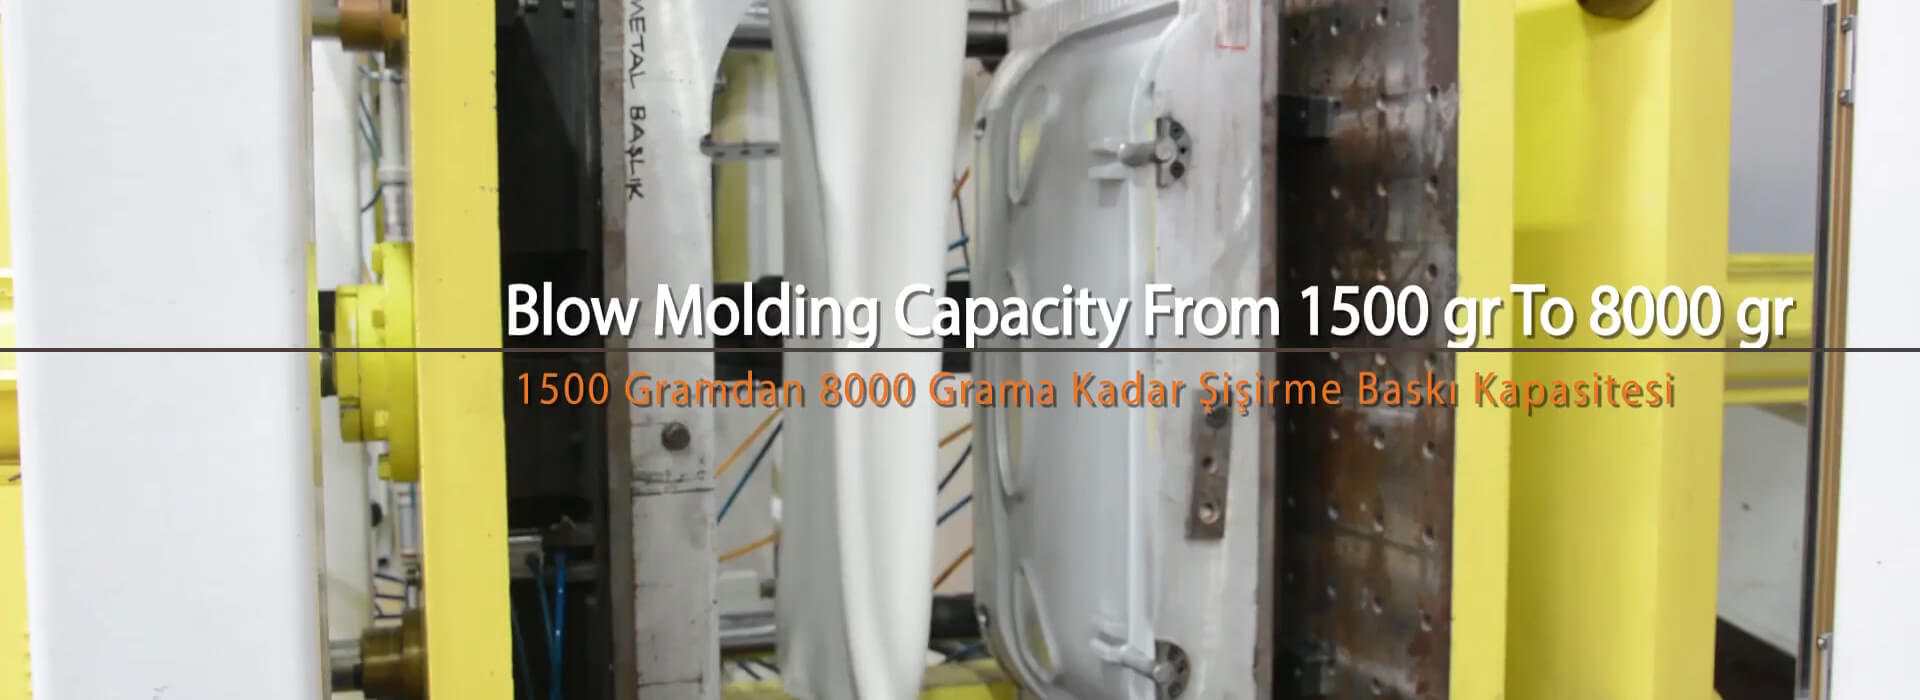 Blow Molding Capacity from 1500 gr to 8000 gr